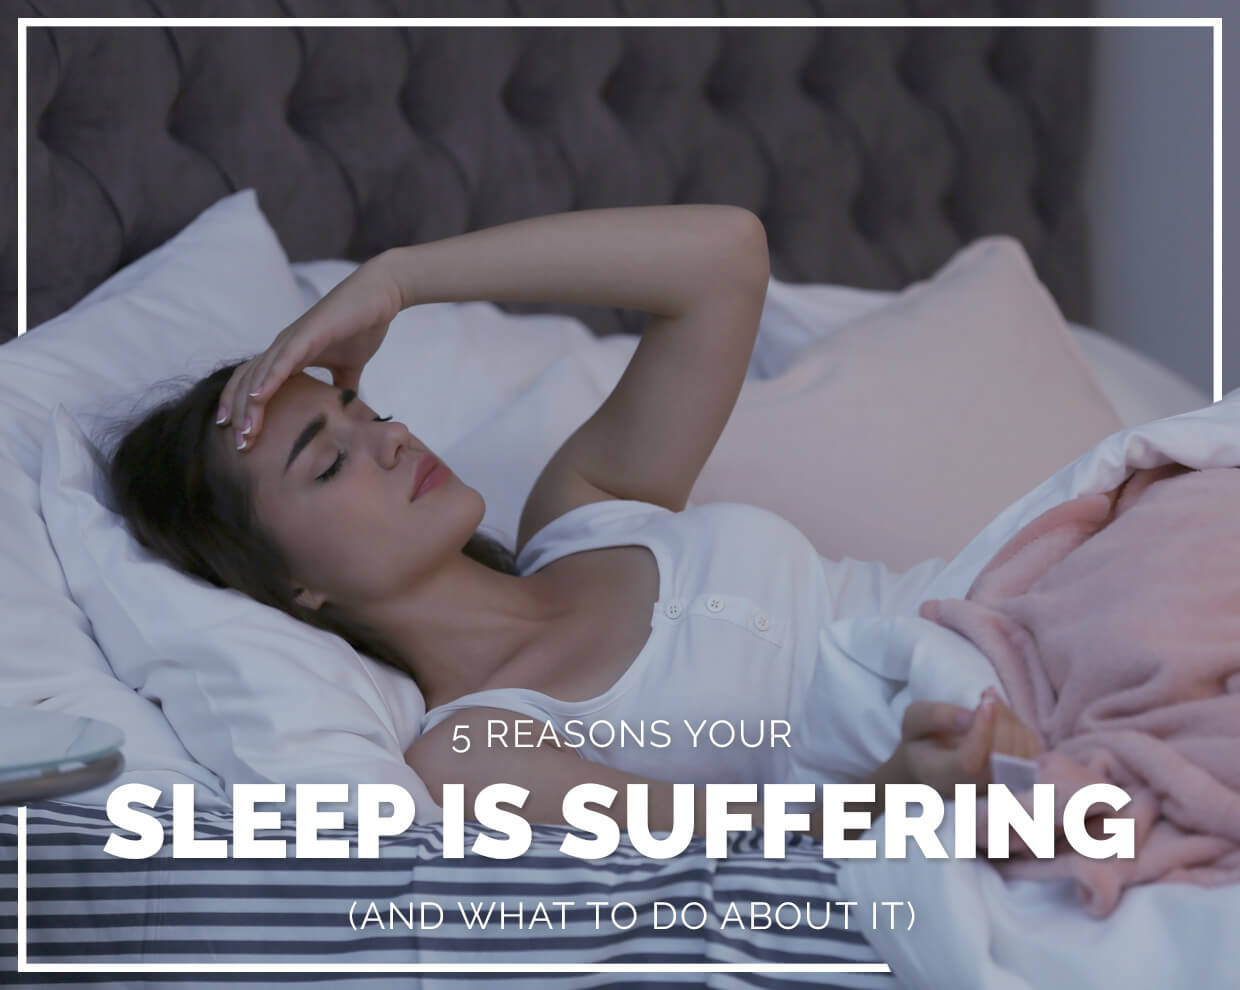 5 reasons your sleep is suffering (and what to do about it)